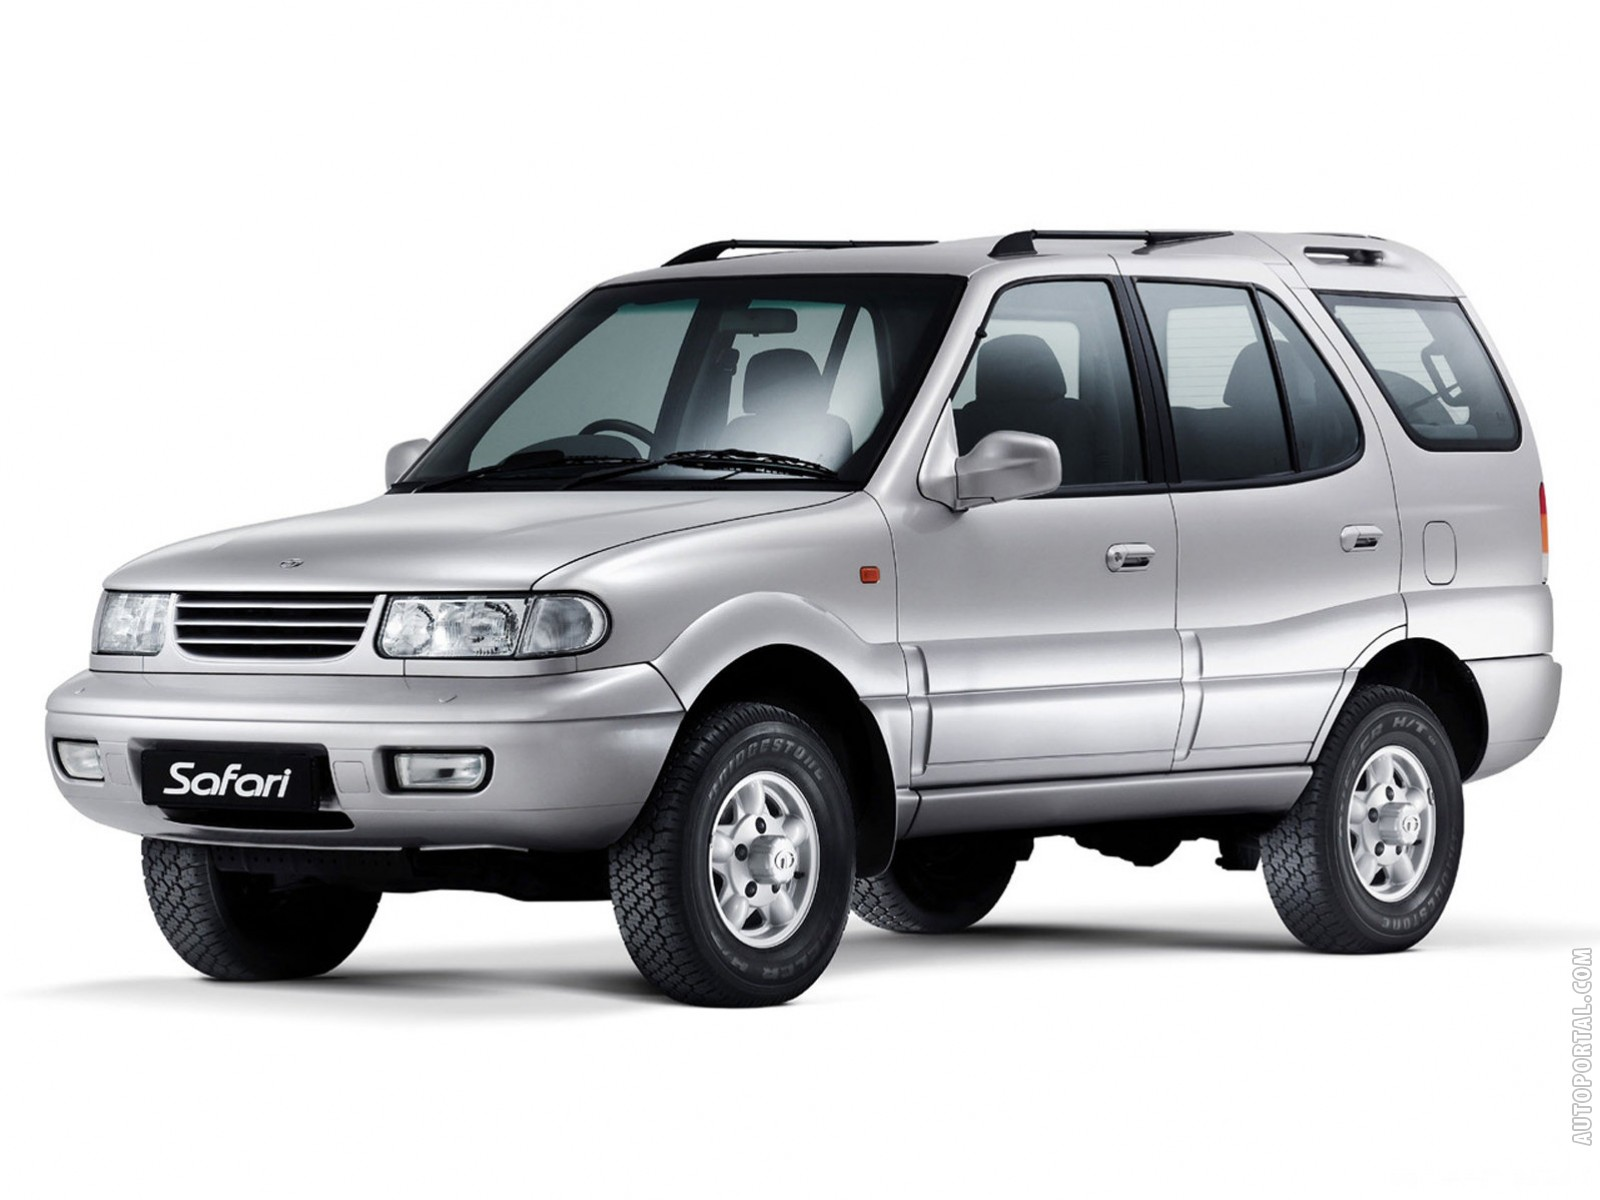 Tata Safari wallpapers, free download